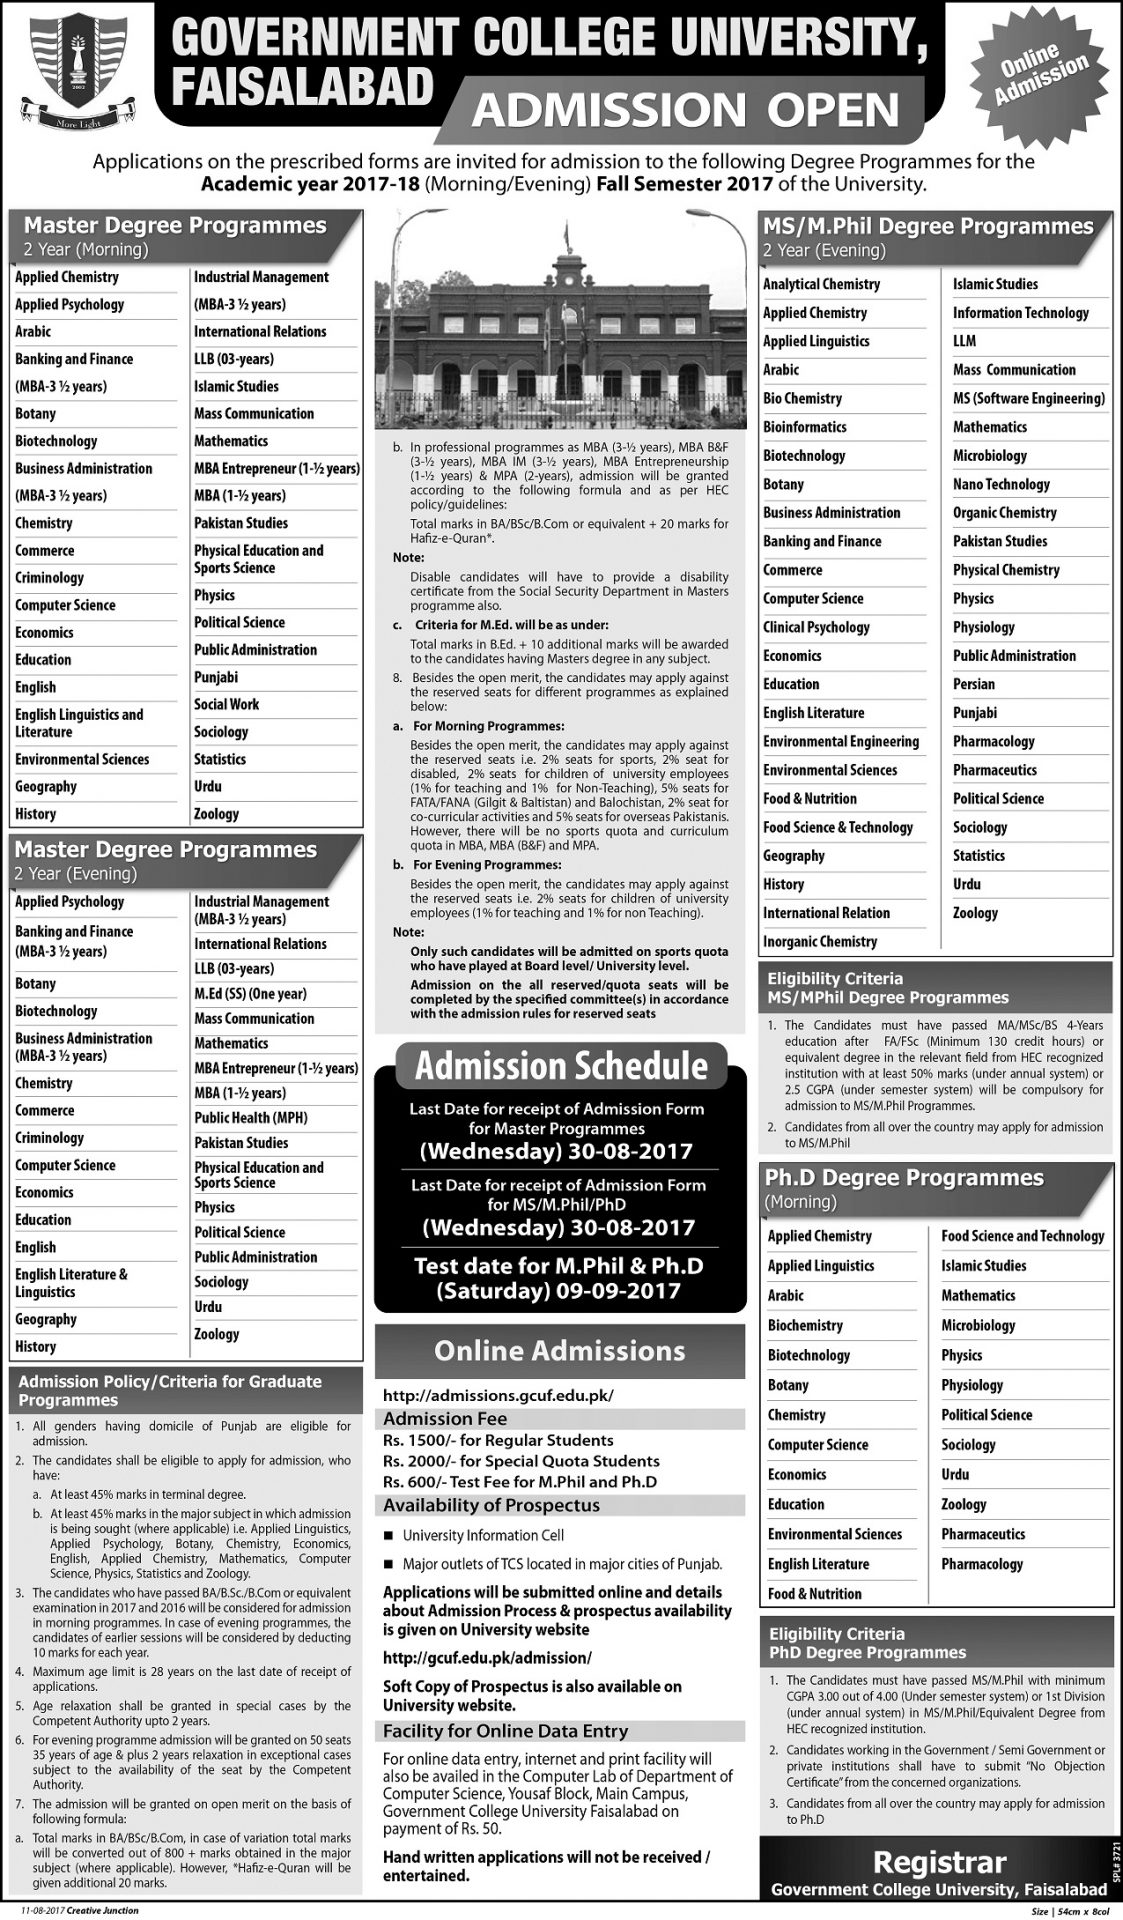 GCUF Admissions 2017 Fall Government College University Faisalabad Admission Form